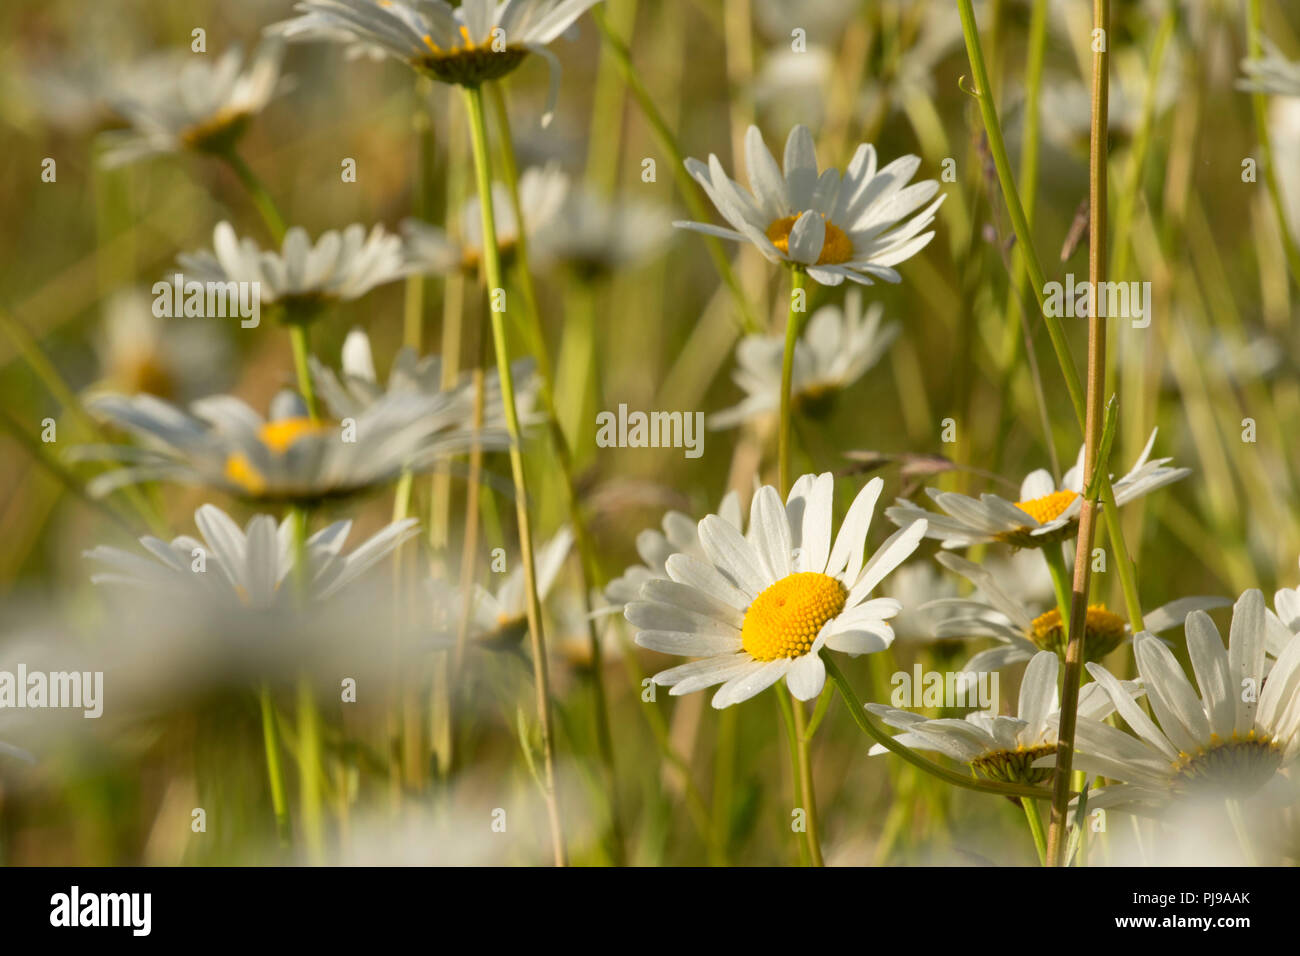 Daisies, Willamette Mission State Park, Oregon - Stock Image